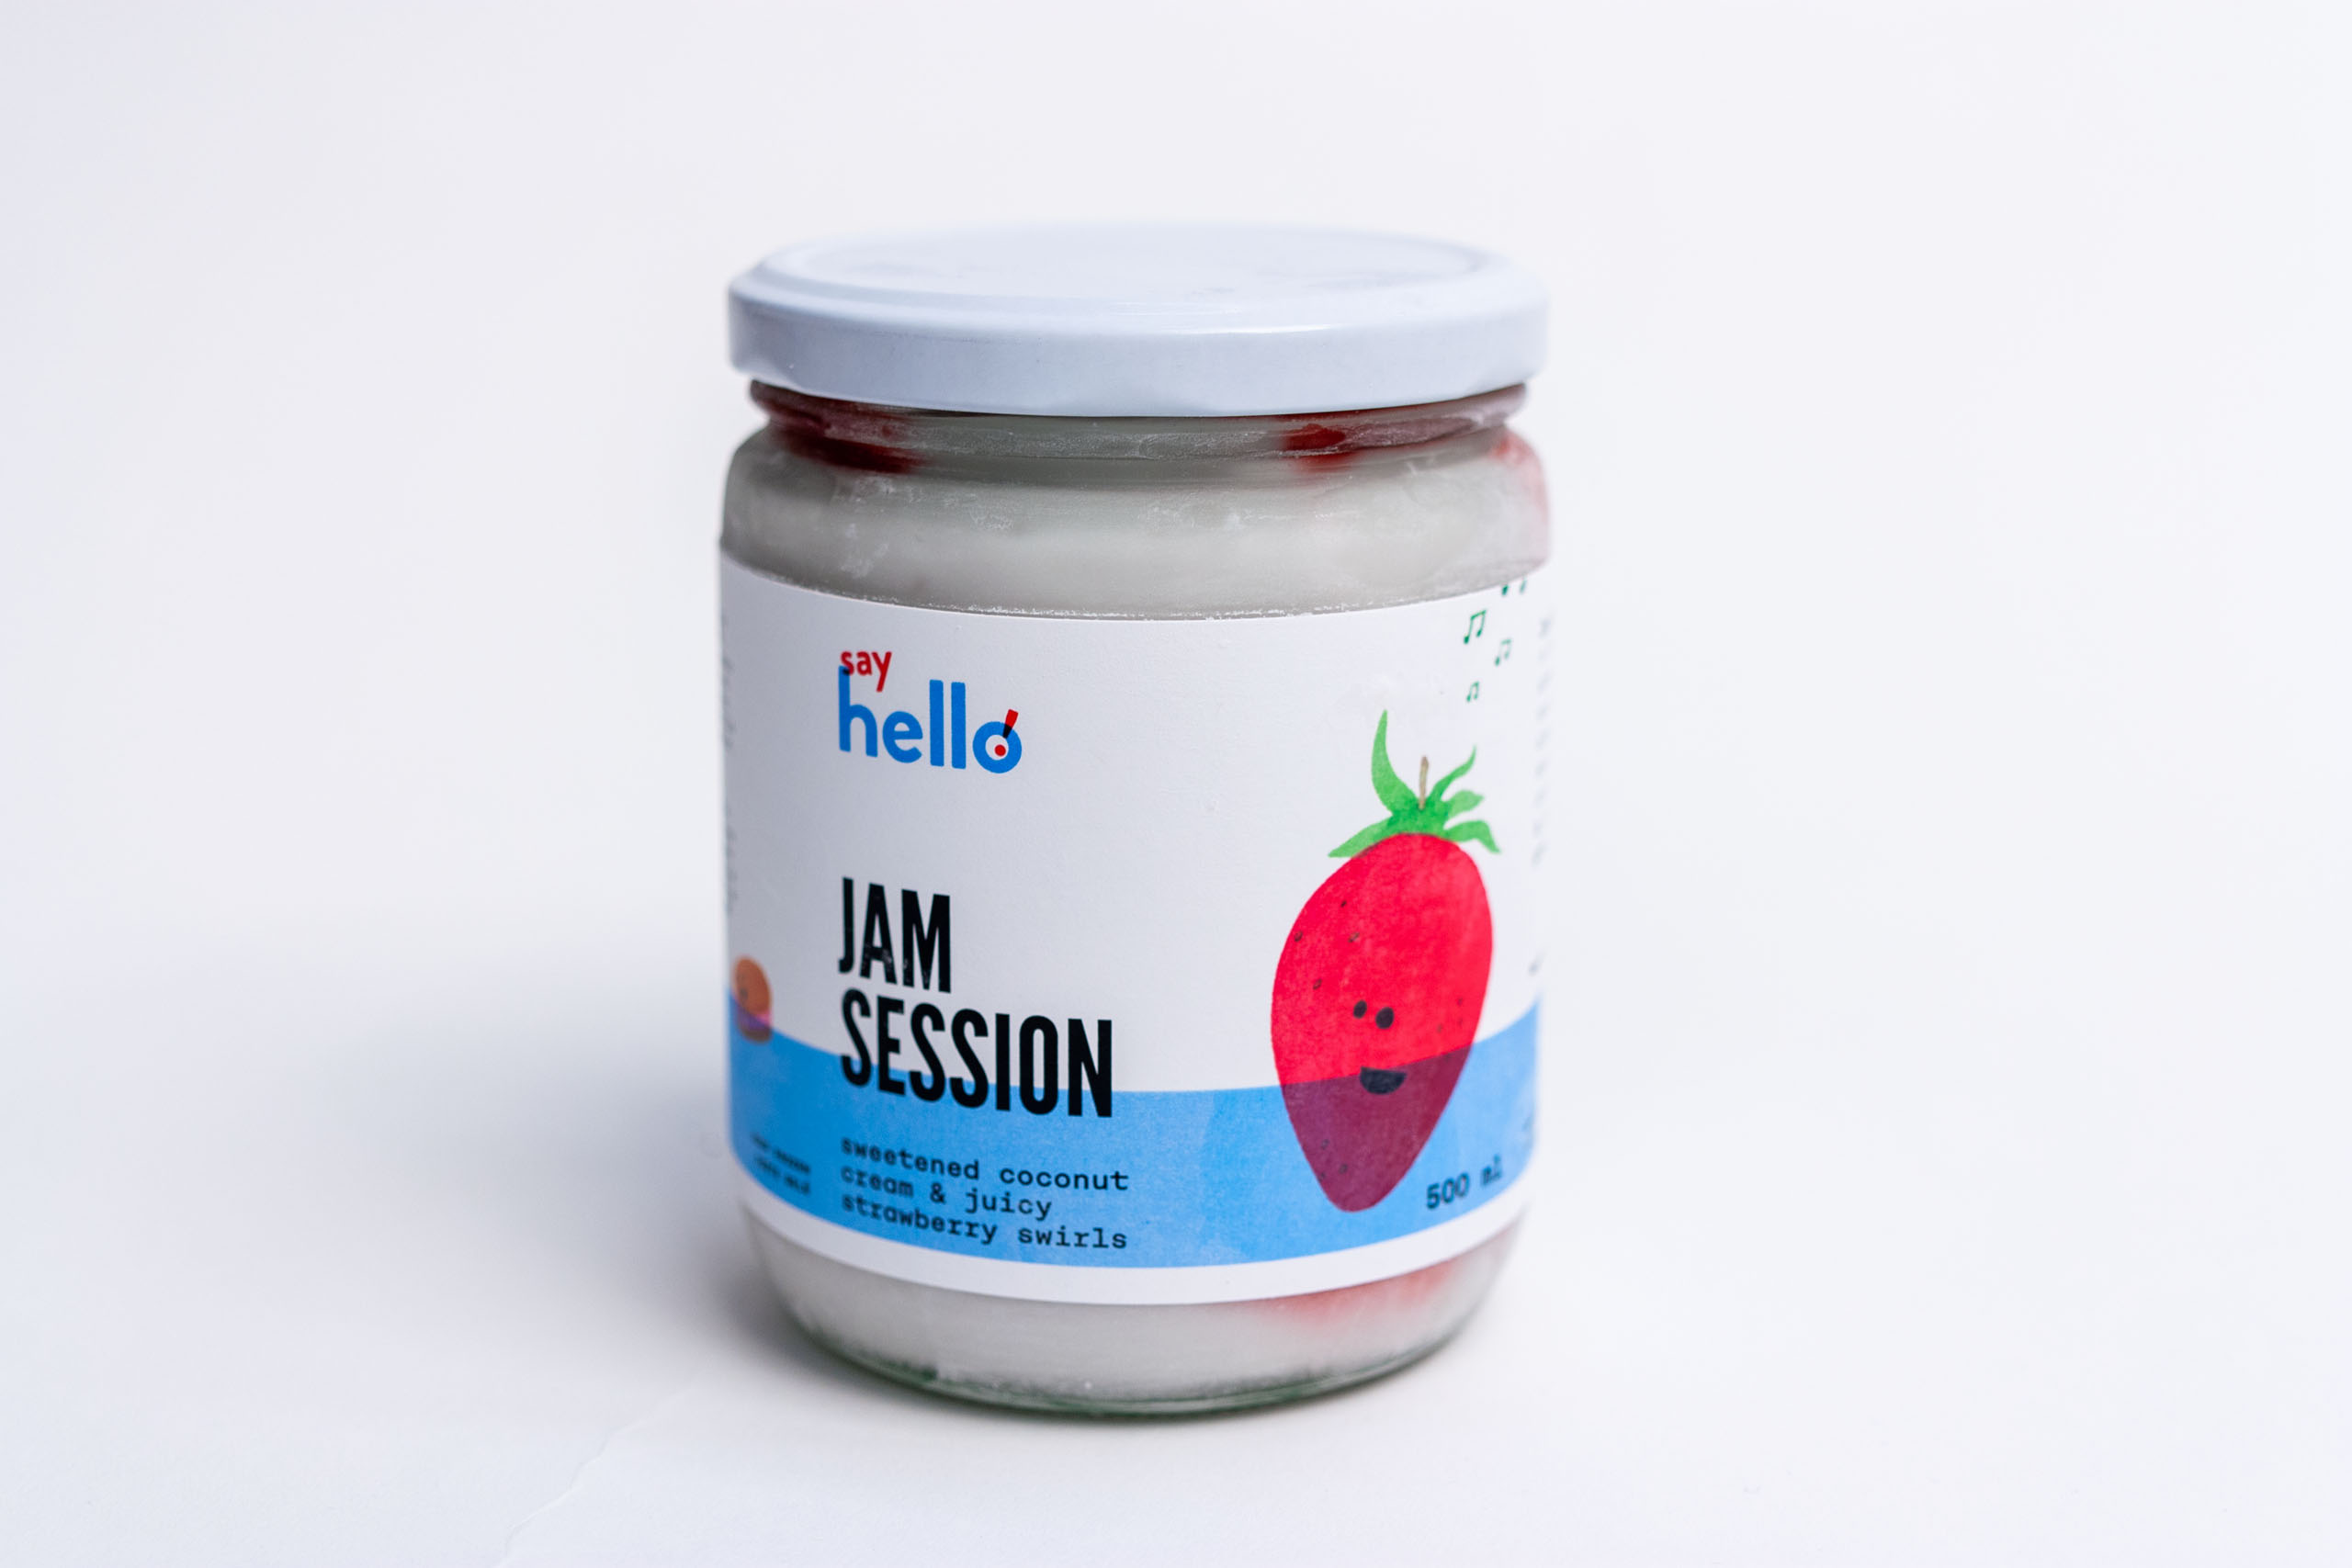 Jam Session Ice Cream jar with a strawberry illustrated — by Dima.